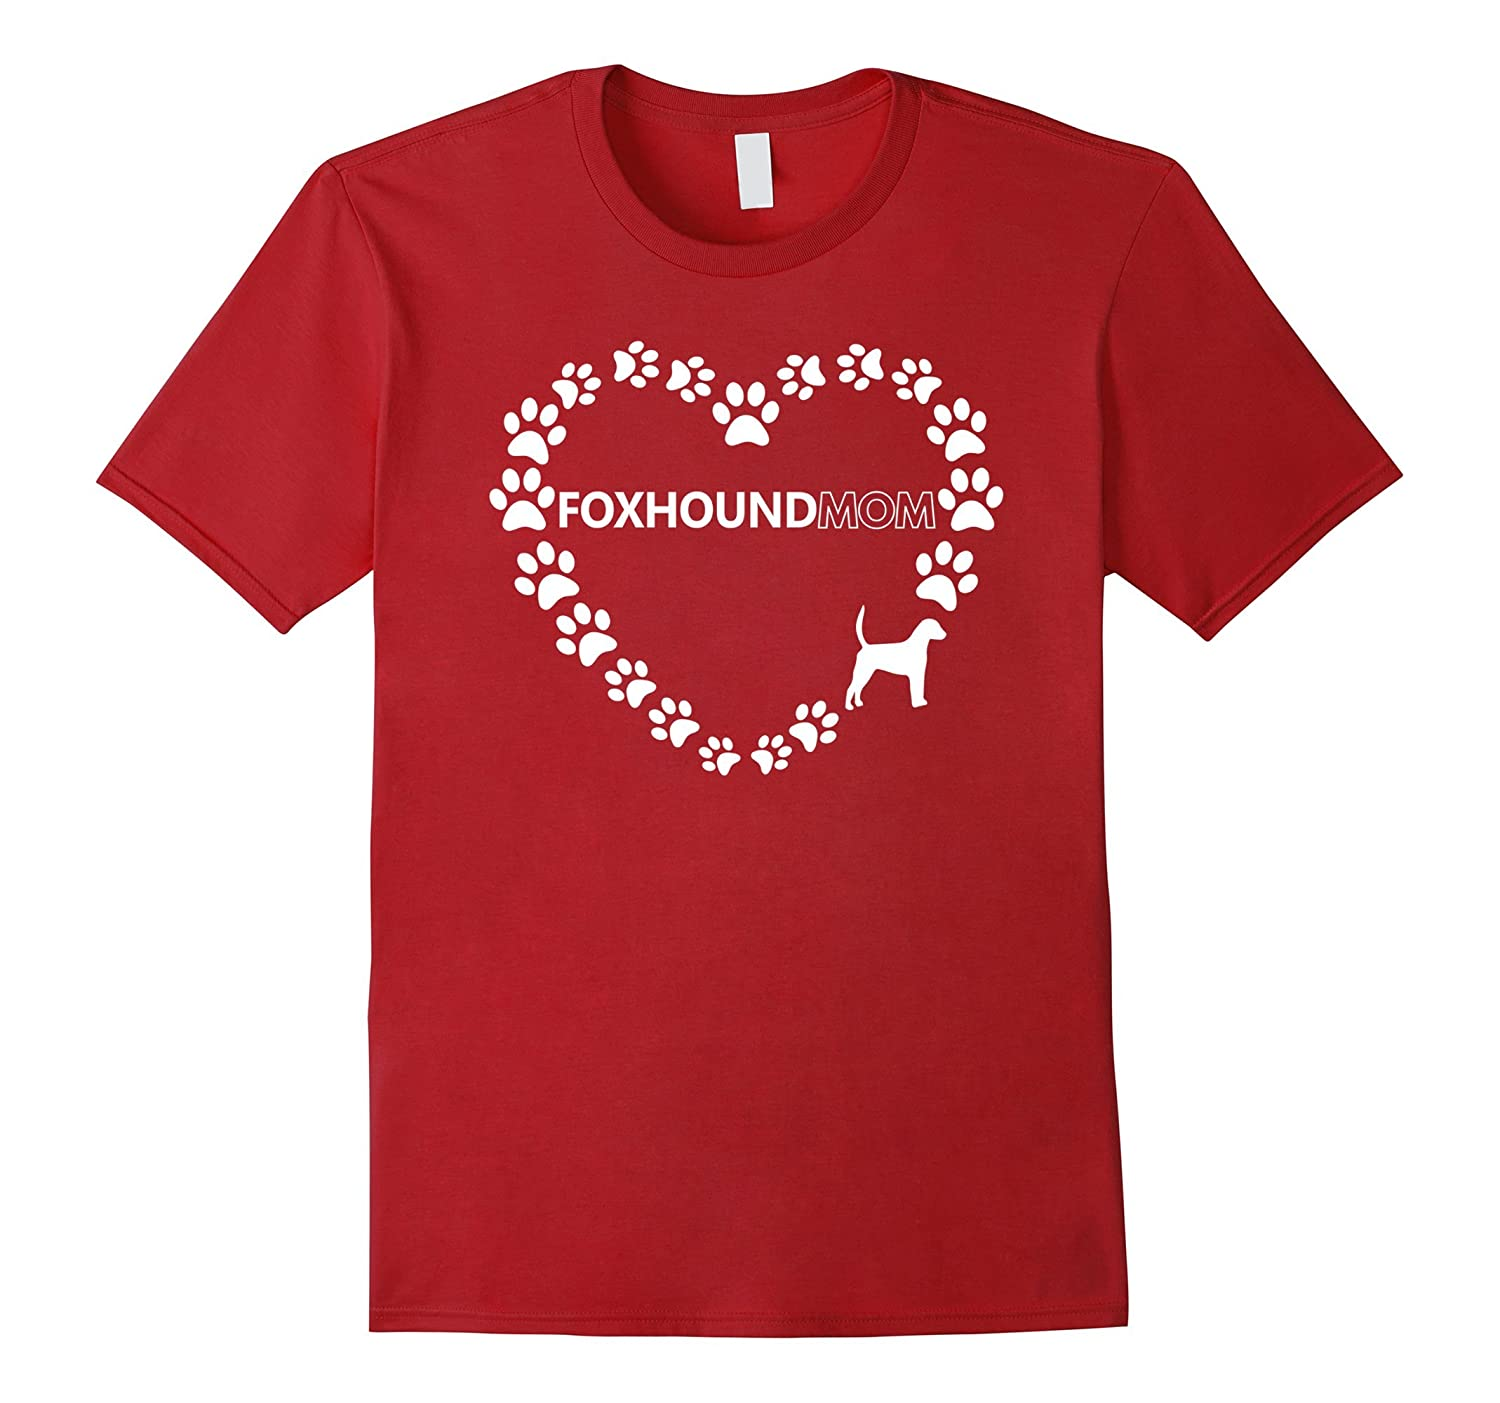 Foxhound Mom Women's Dog Gift T-Shirt